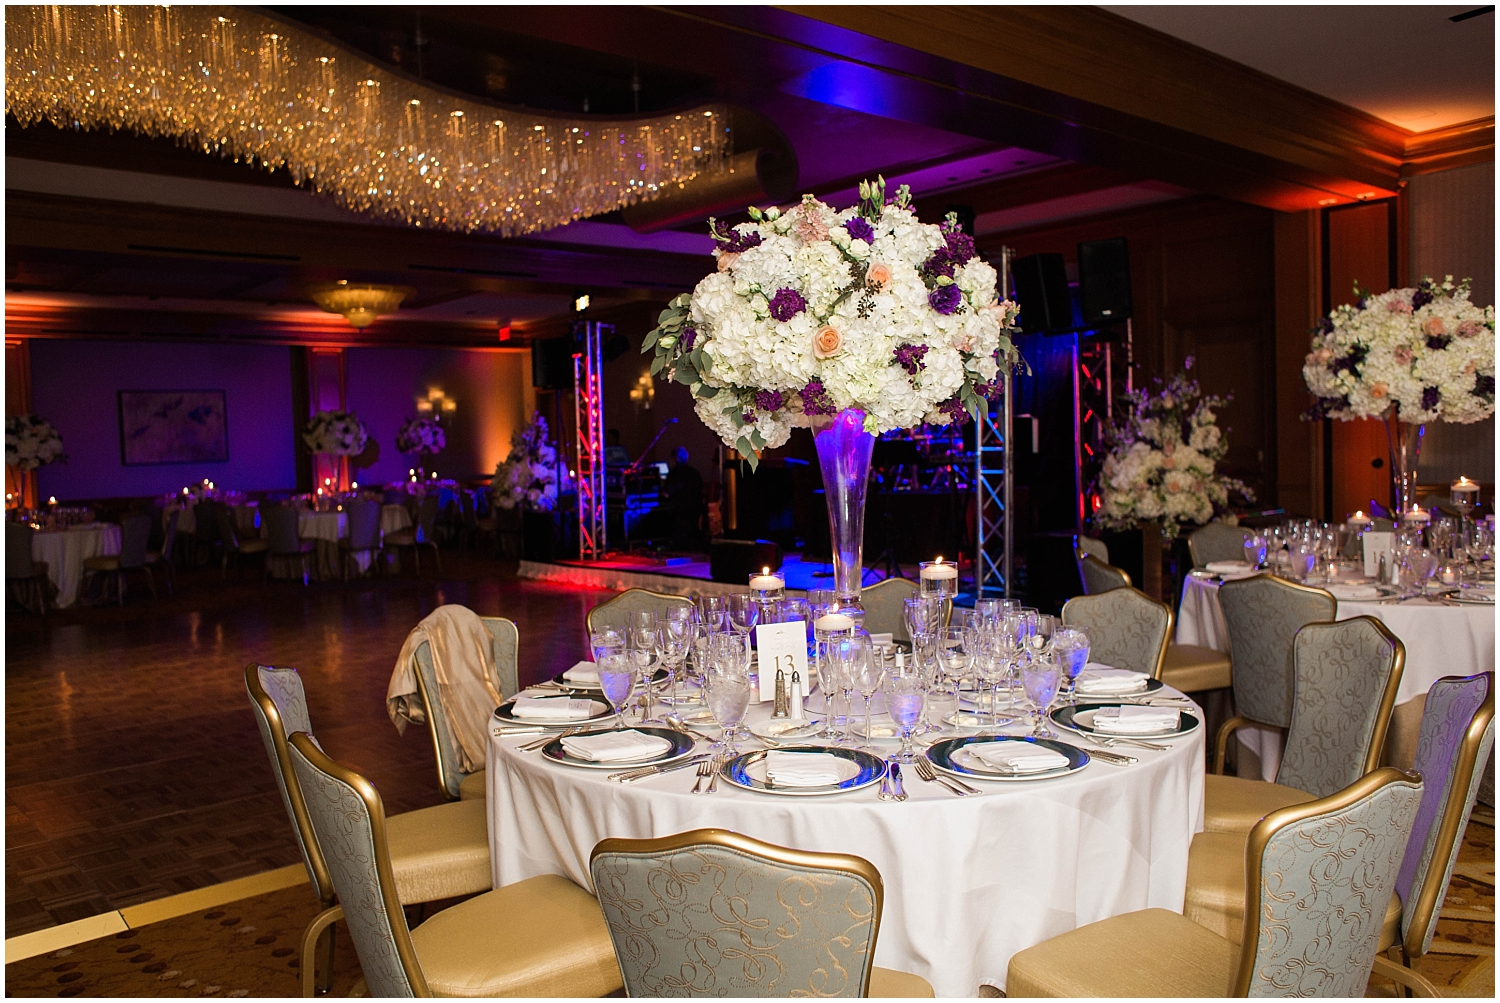 tall wedding centerpiece with purple and white flowers